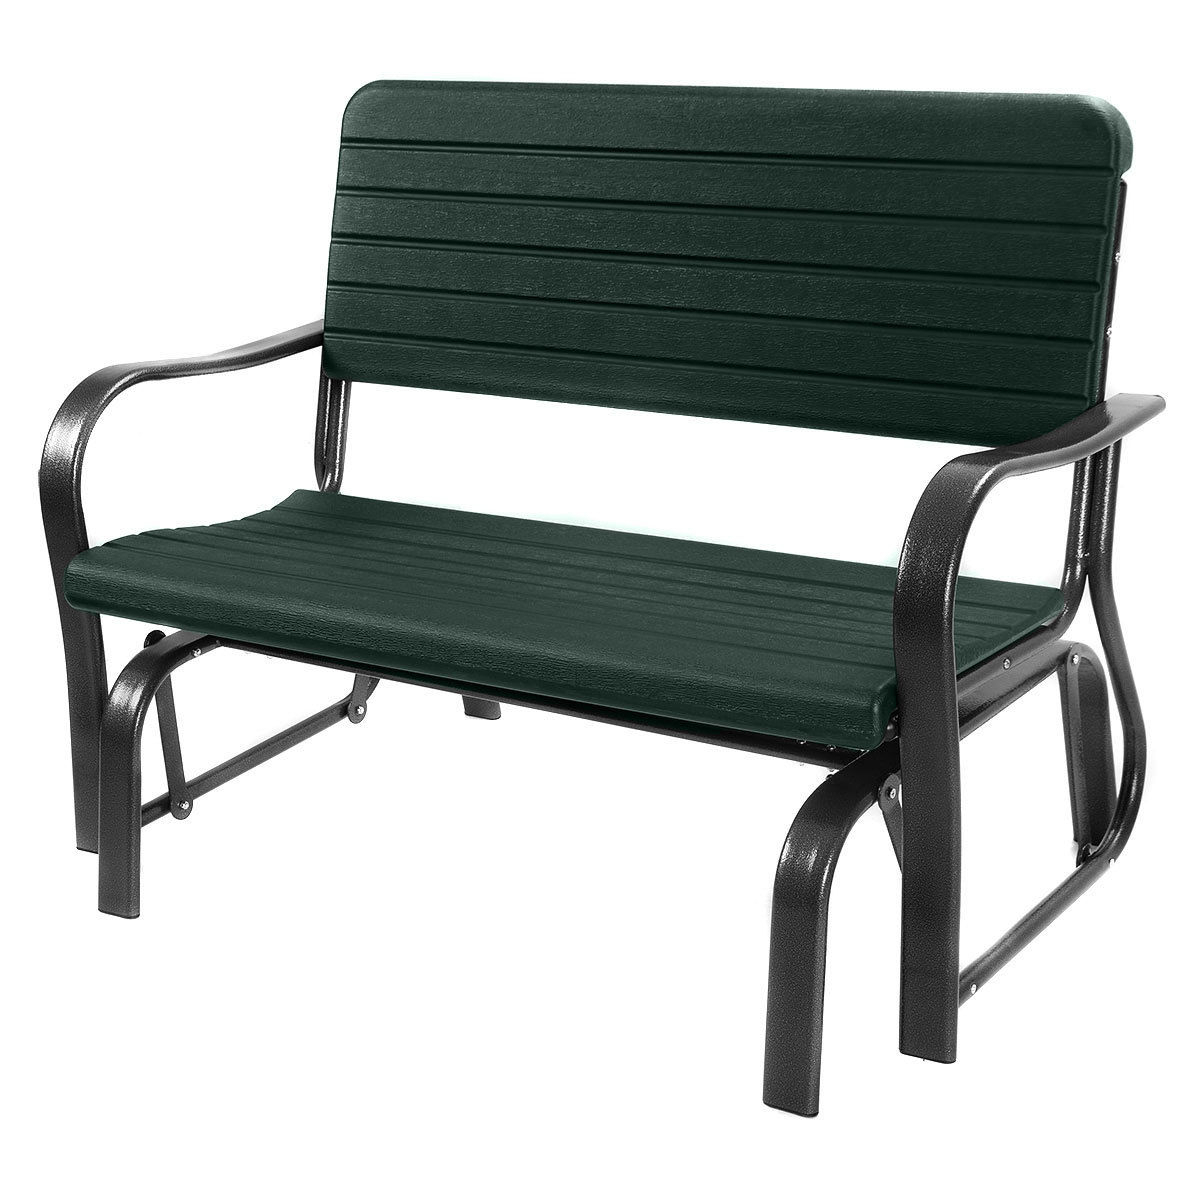 Costway Outdoor Patio Swing Porch Rocker Glider Bench Loveseat Garden Seat Steel Inside Rocking Love Seats Glider Swing Benches With Sturdy Frame (View 8 of 25)